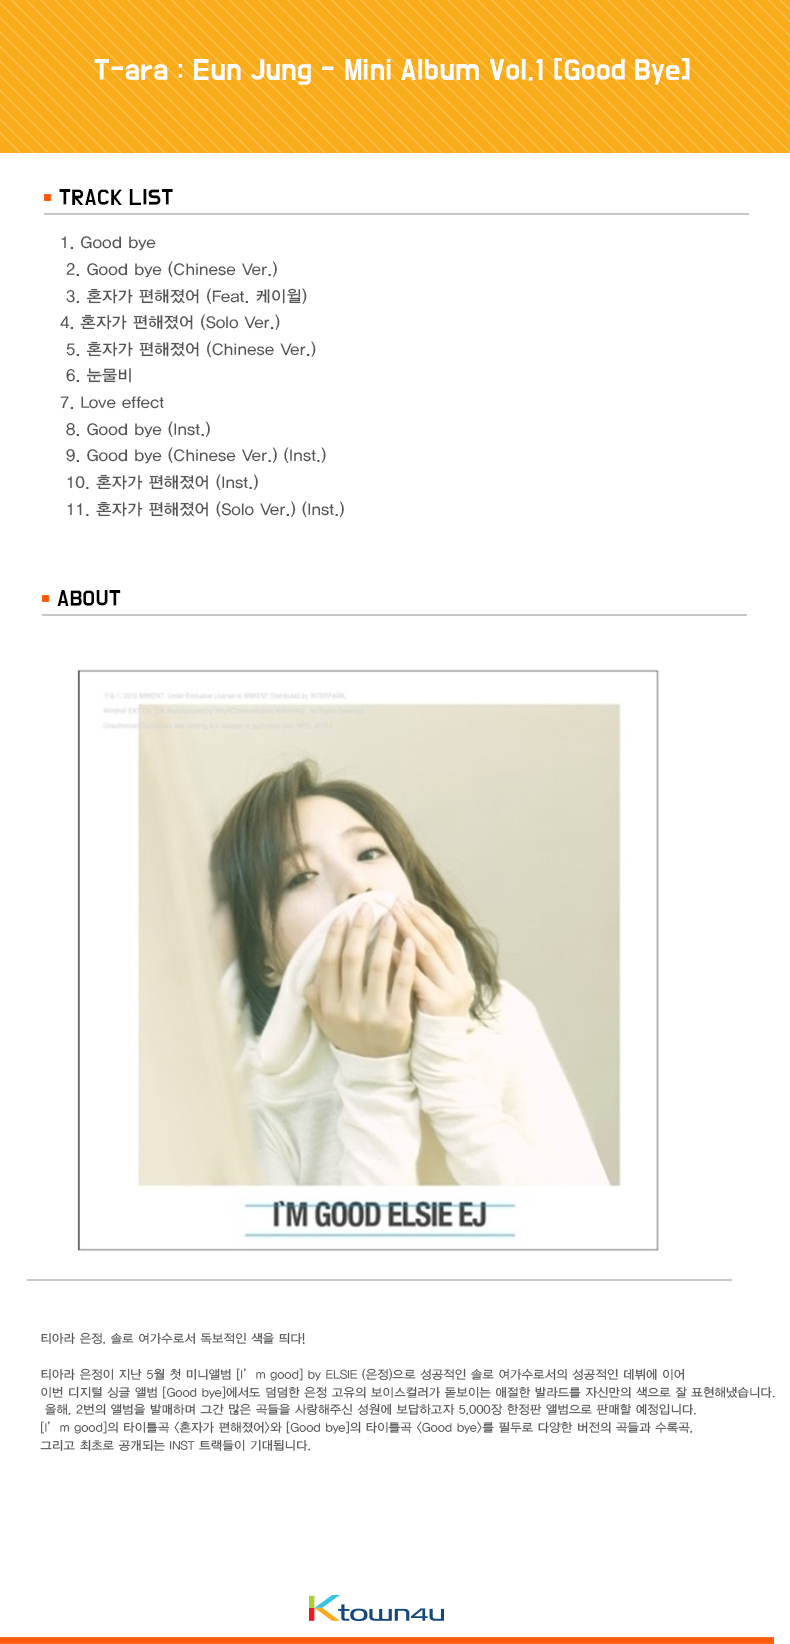 T-ara : Eun Jung - Mini Album Vol.1 [Good Bye]